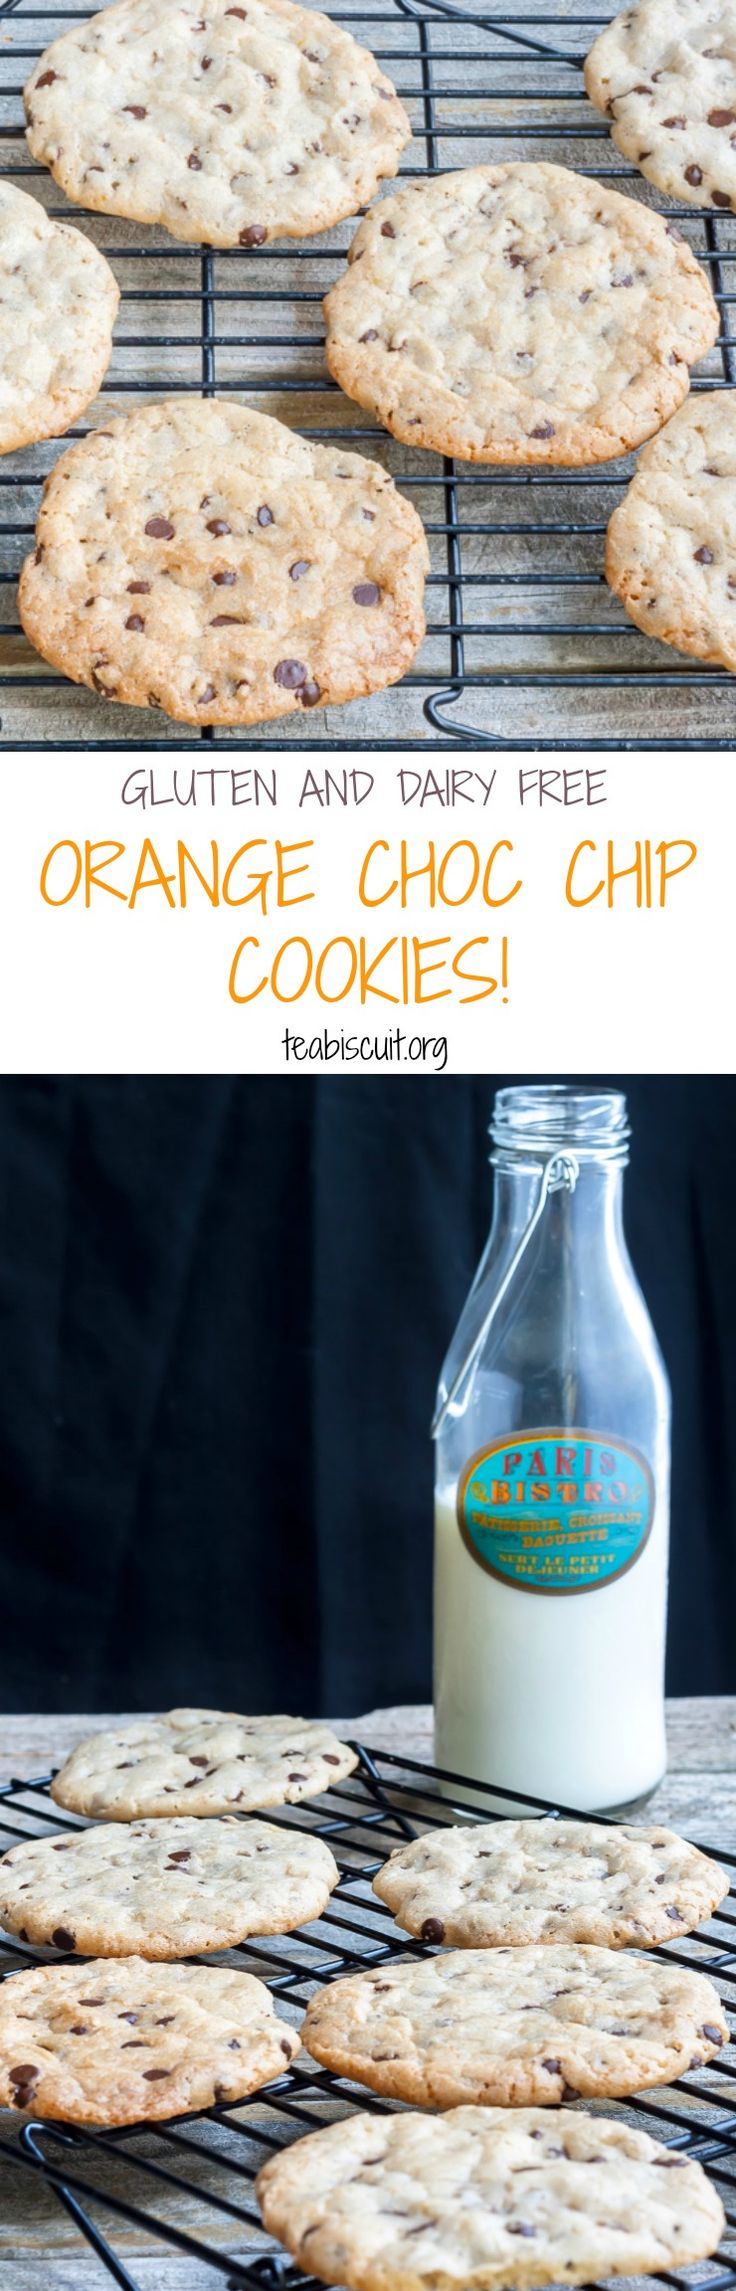 Gluten and Dairy Free Orange Chocolate Chip Cookies! Quick and Easy to make | teabiscuit.org